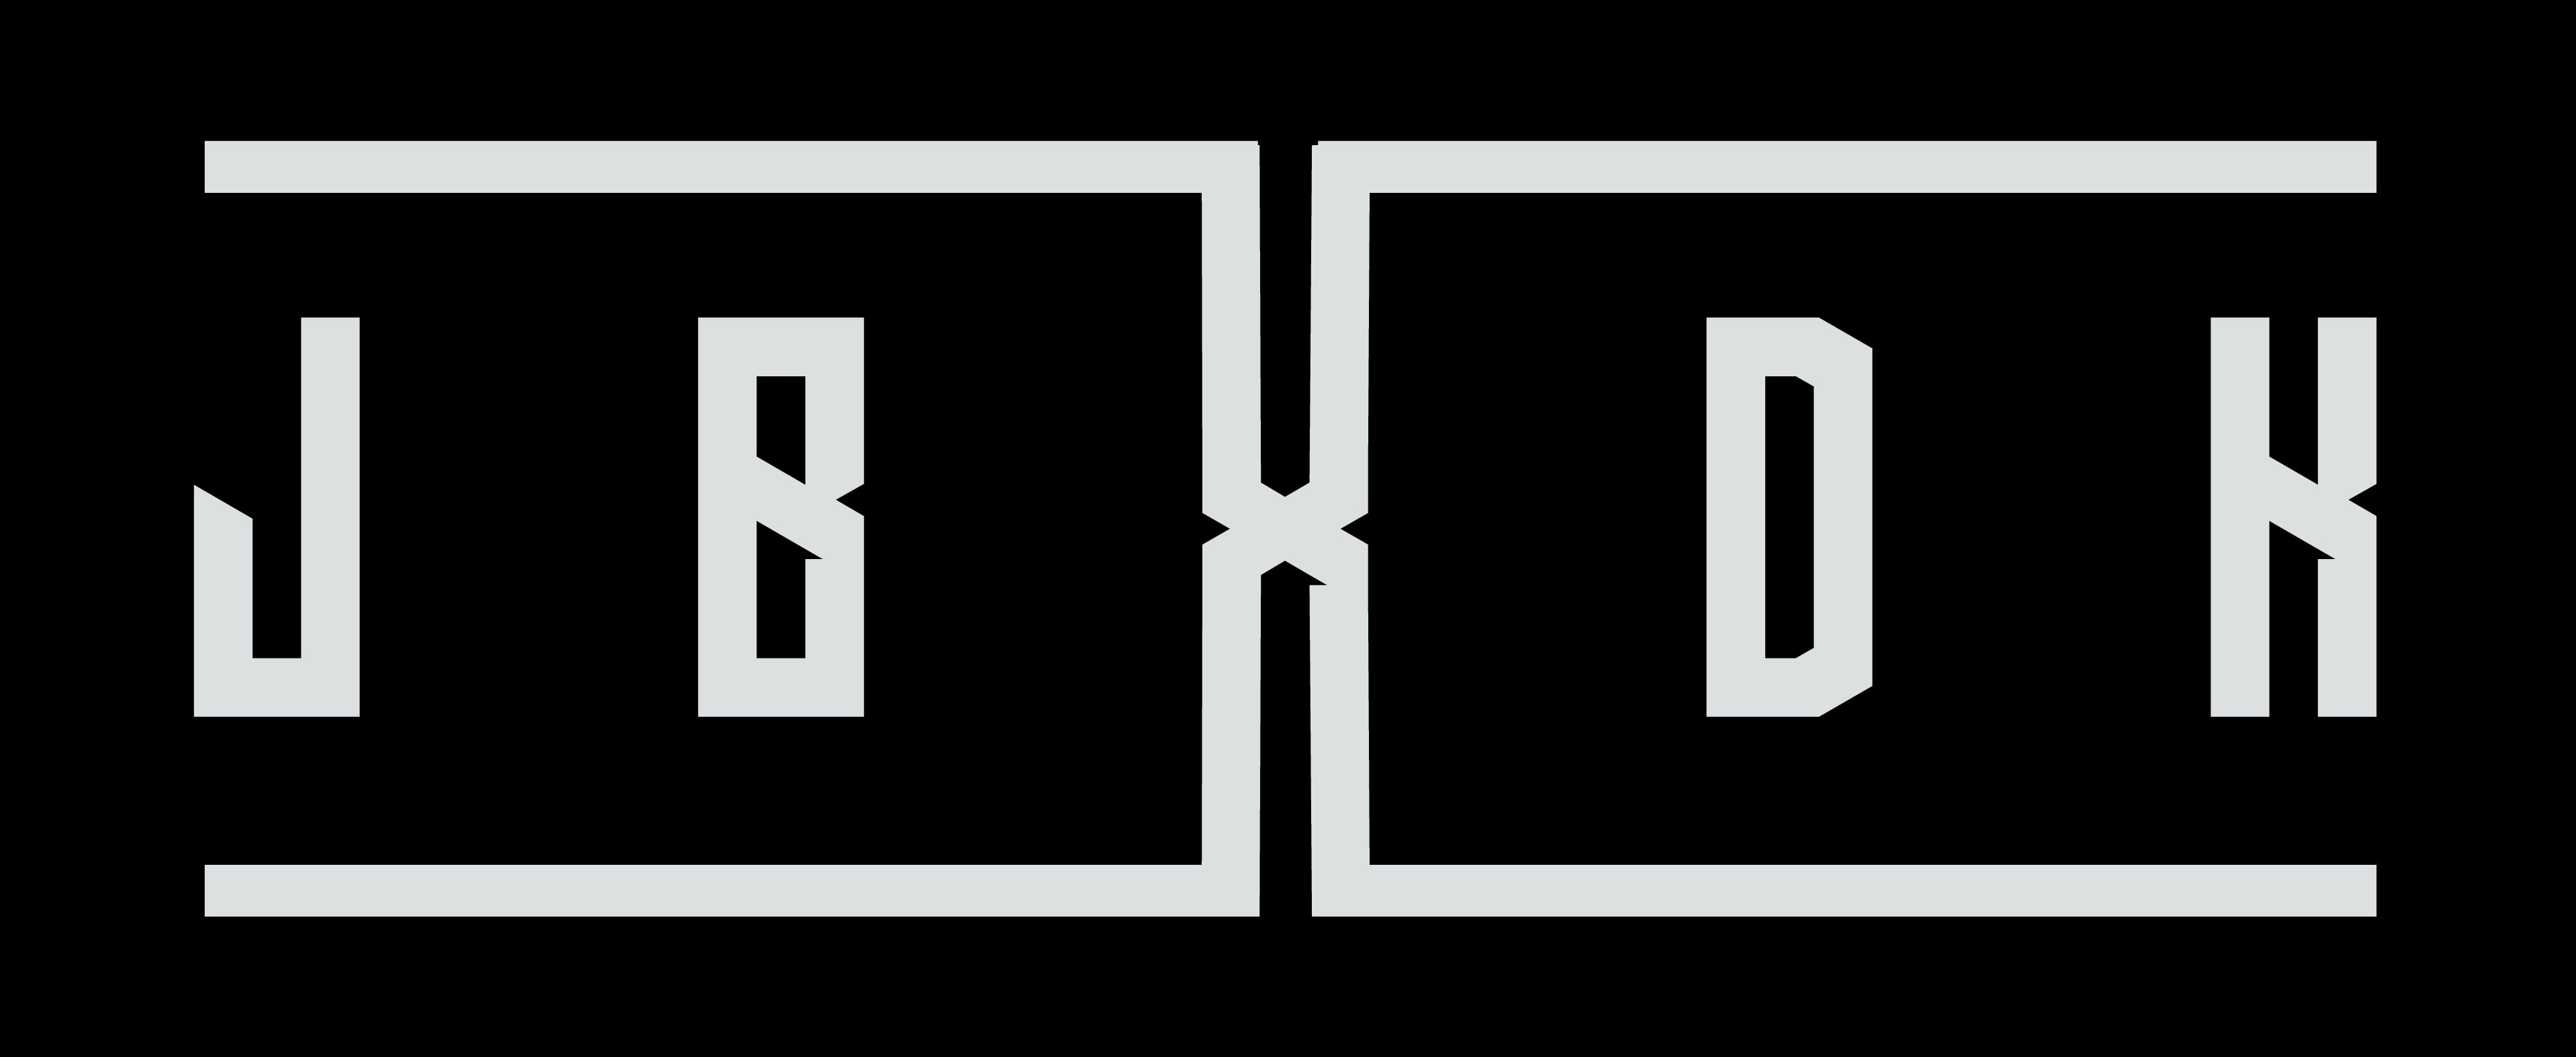 JBDK Inverted Logo